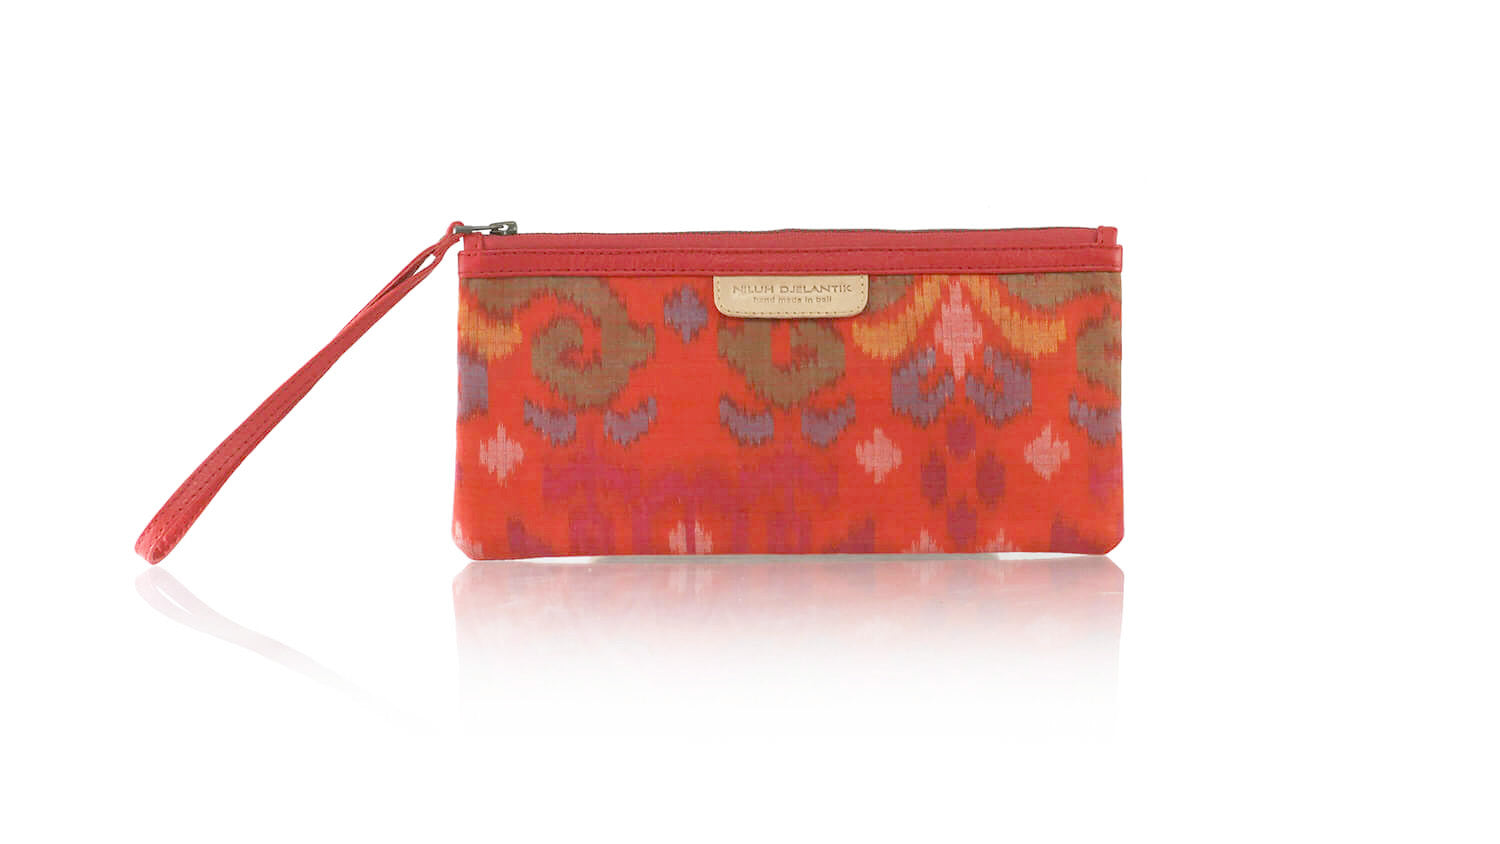 Leather-shoes-Clutch 11x23 - Light orange Handwoven Ikat-Zipper Clutch-NILUH DJELANTIK-NILUH DJELANTIK